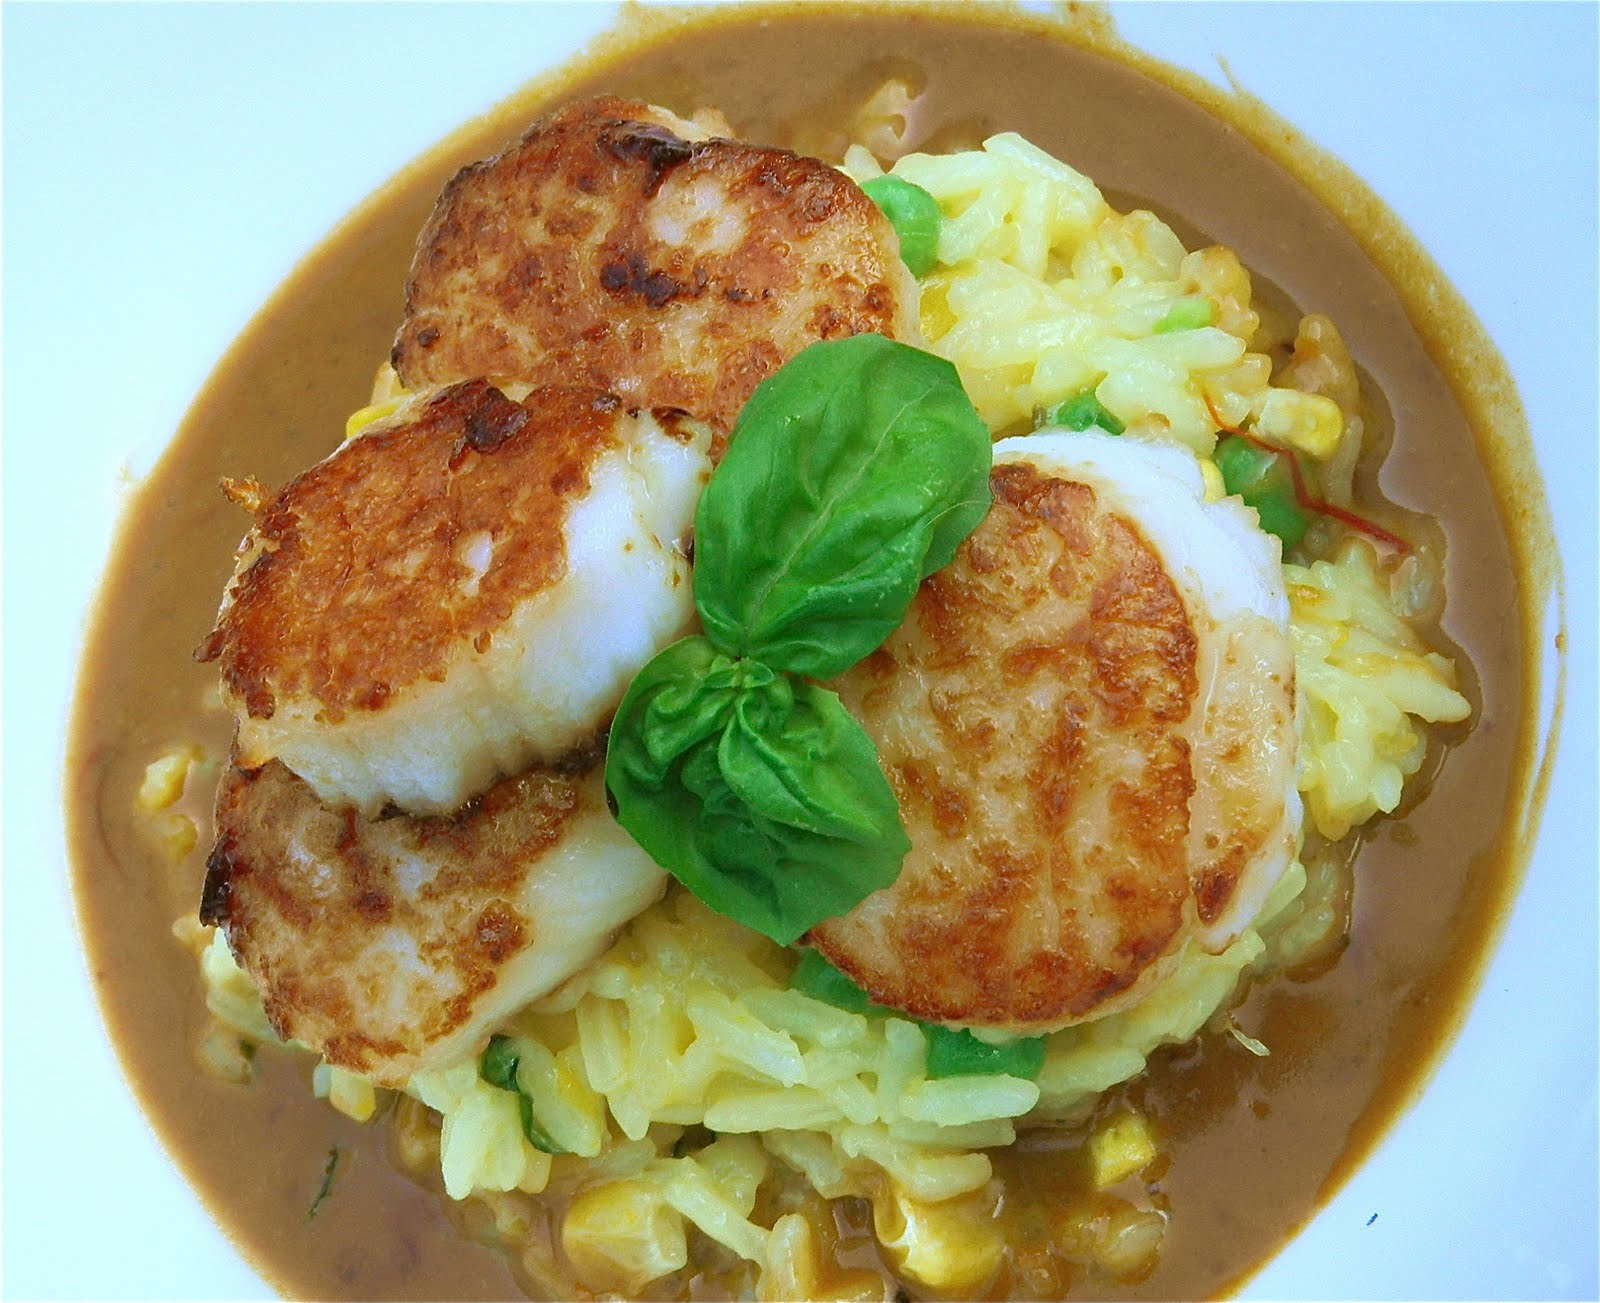 Pan Seared Scallops Over Rice with Orange Saffron Sauce